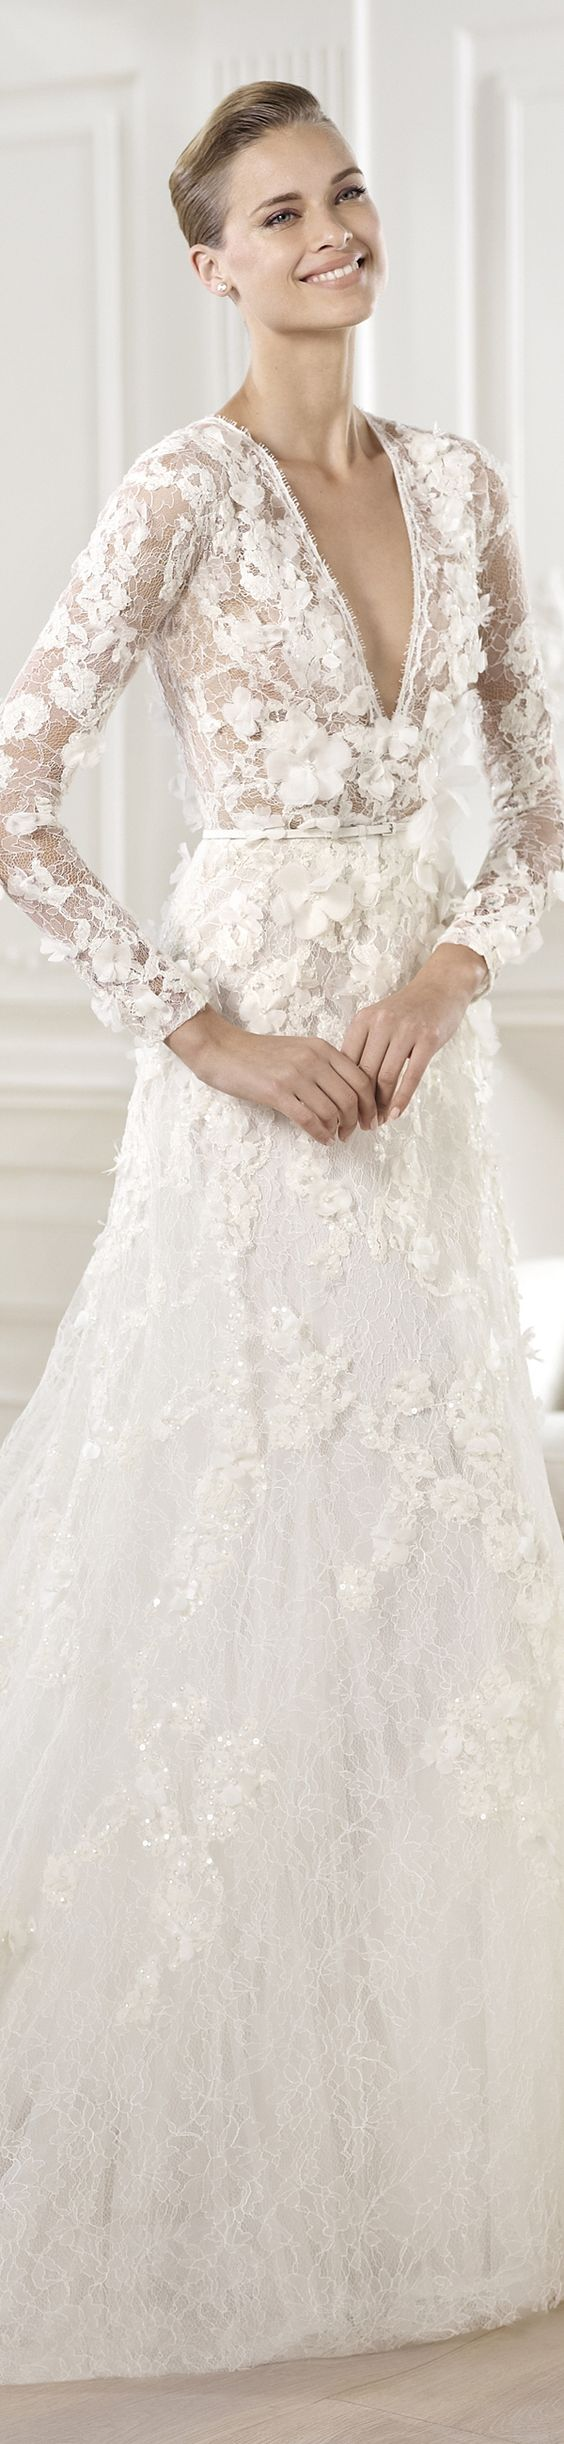 Chantilly lace dress with crystal gemstone embroidery and for Chantilly lace wedding dress